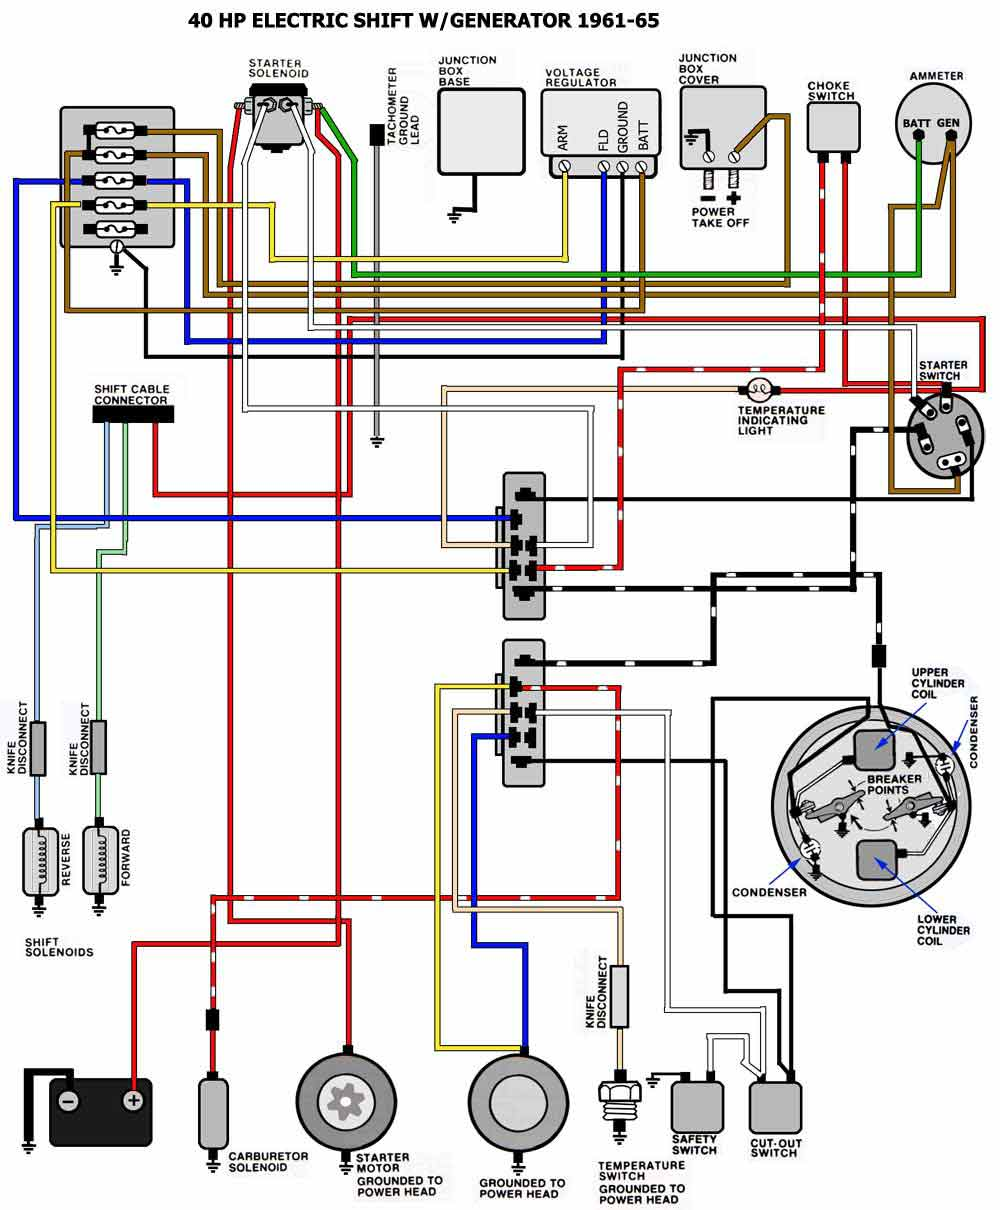 Ignition Wire Diagram For 1975 Johnson Evinrude 50 Hp Outboard 7 4 Mercruiser Engine Wiring Mastertech Marine Diagrams